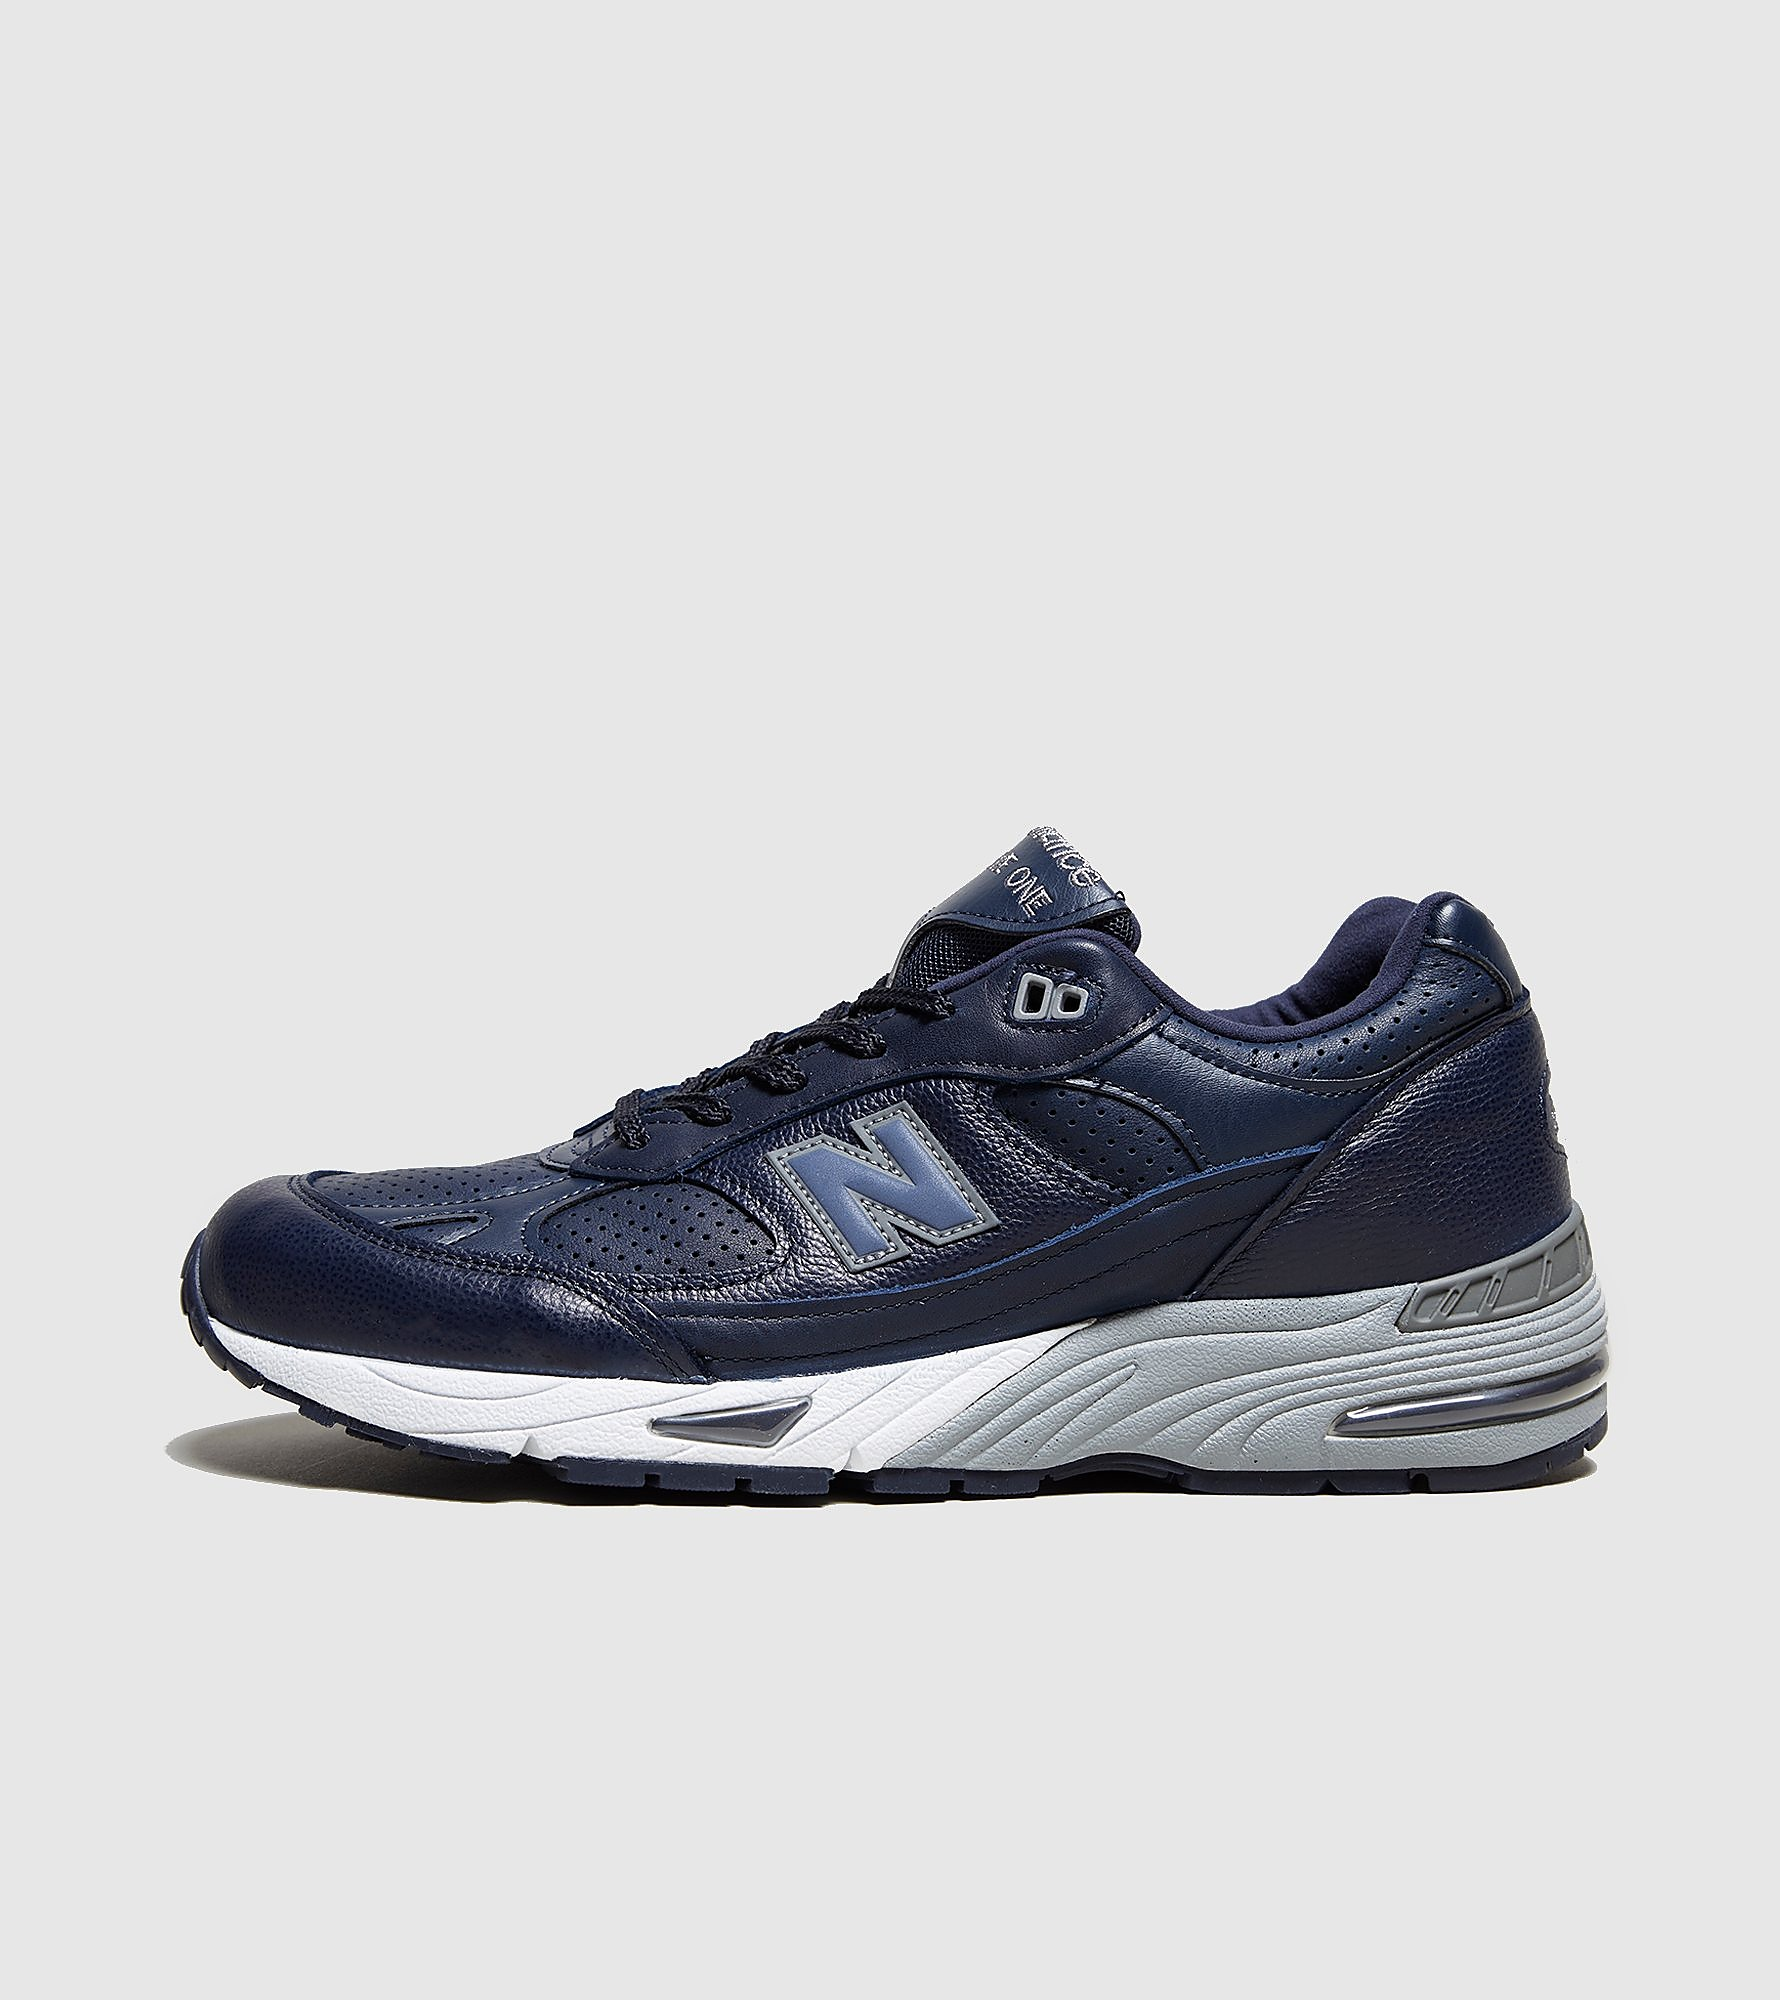 New Balance M991GMC - Made in England